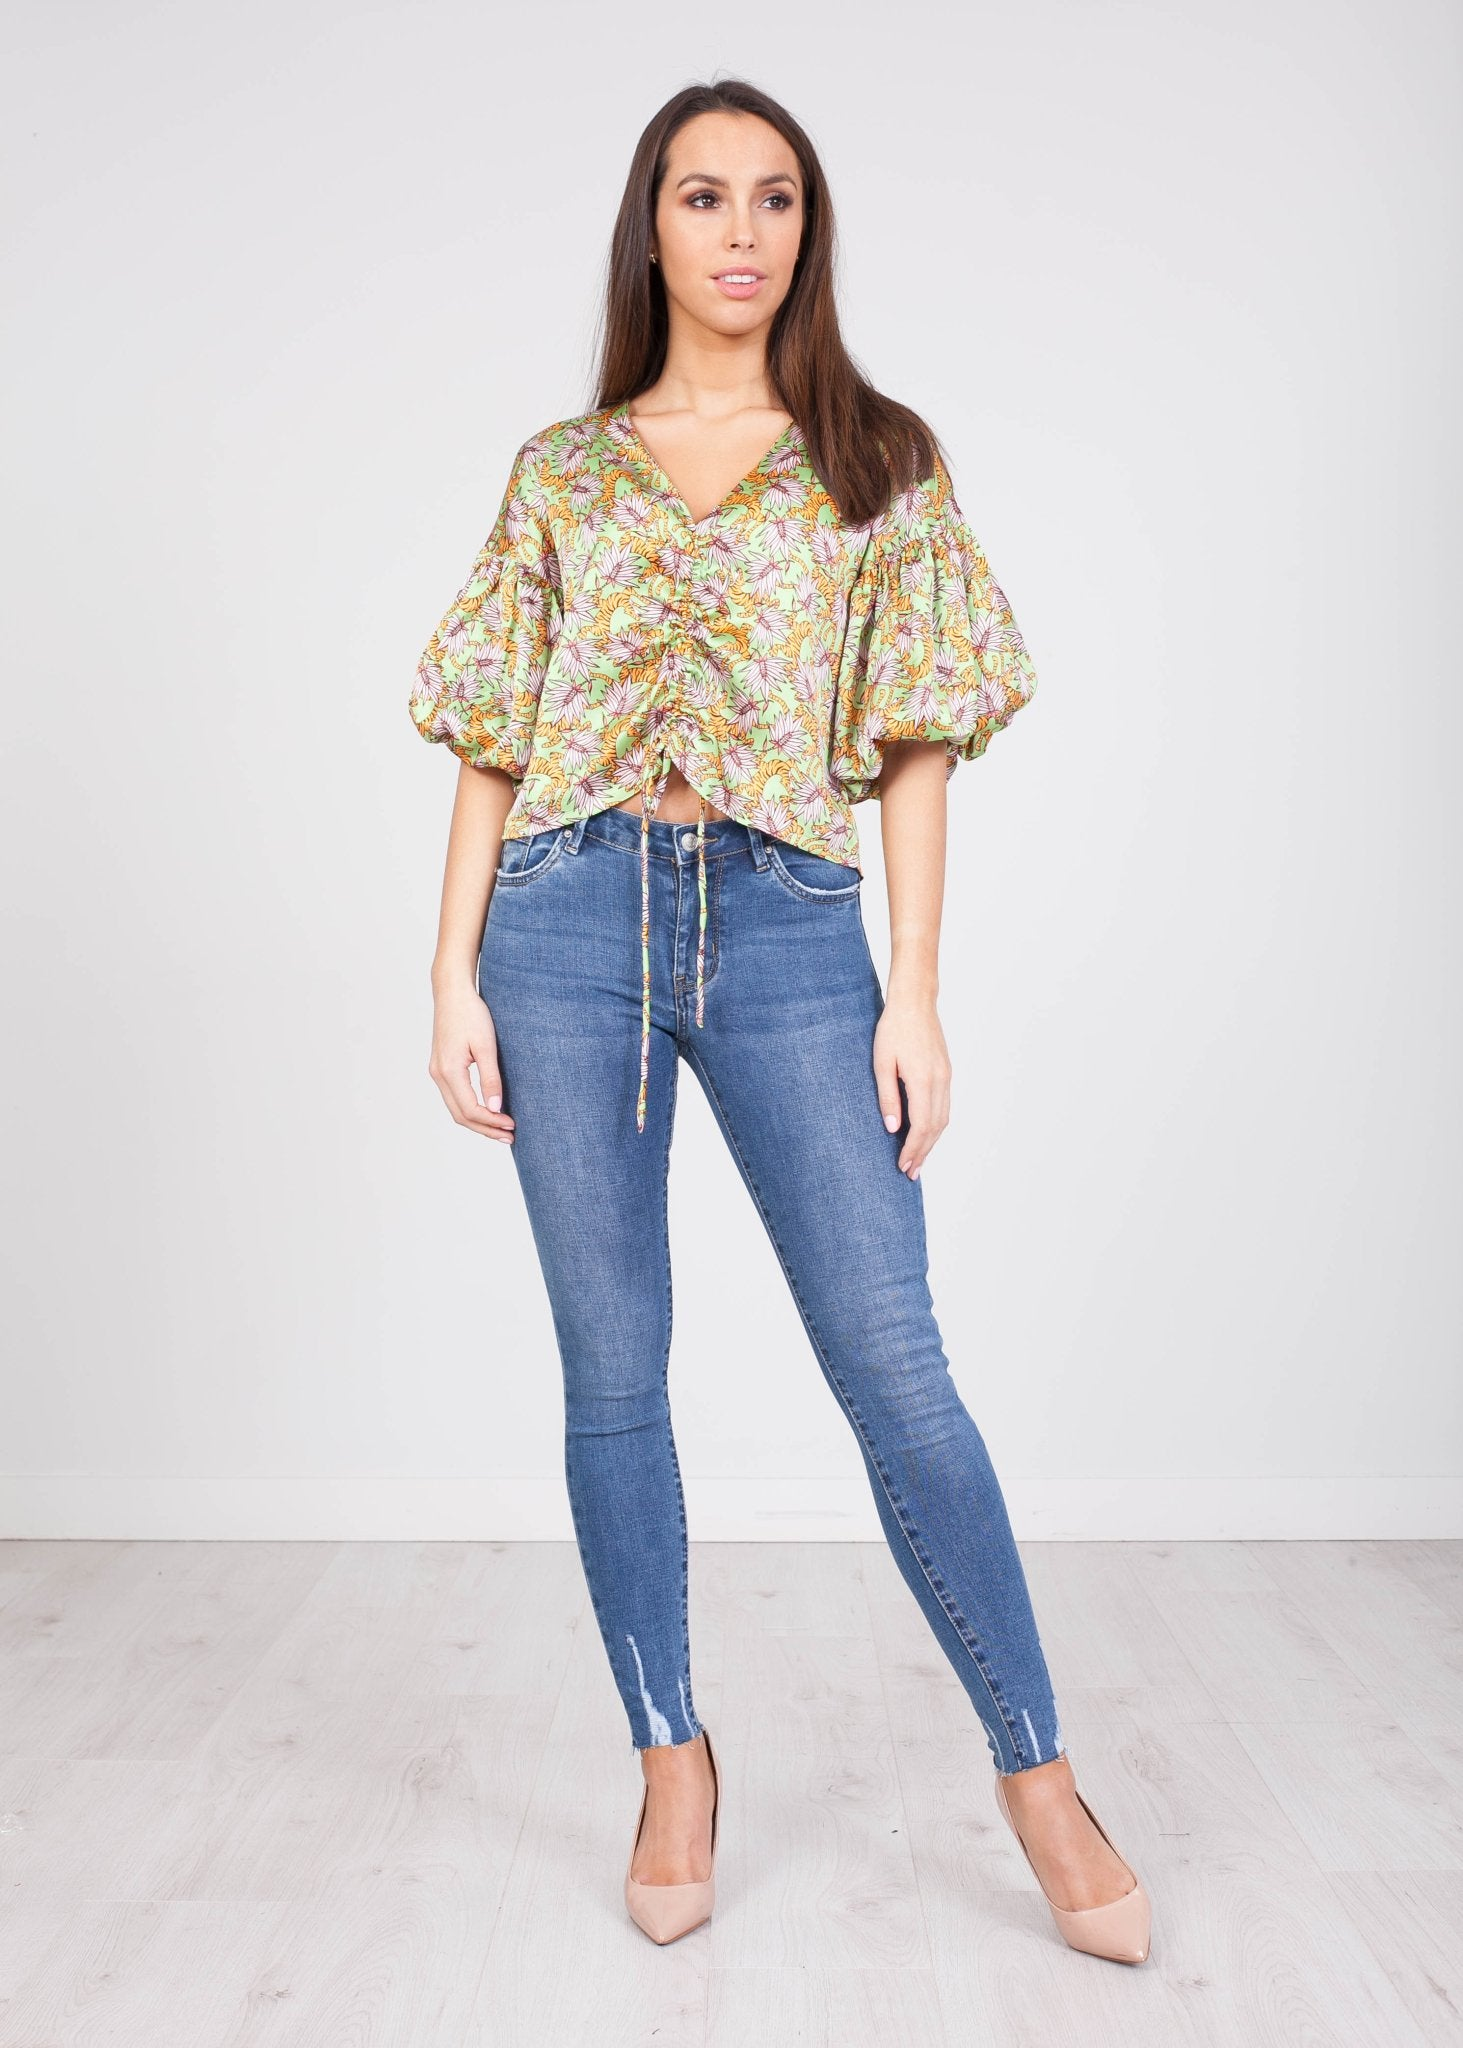 Frankie Puff Sleeve Top - The Walk in Wardrobe